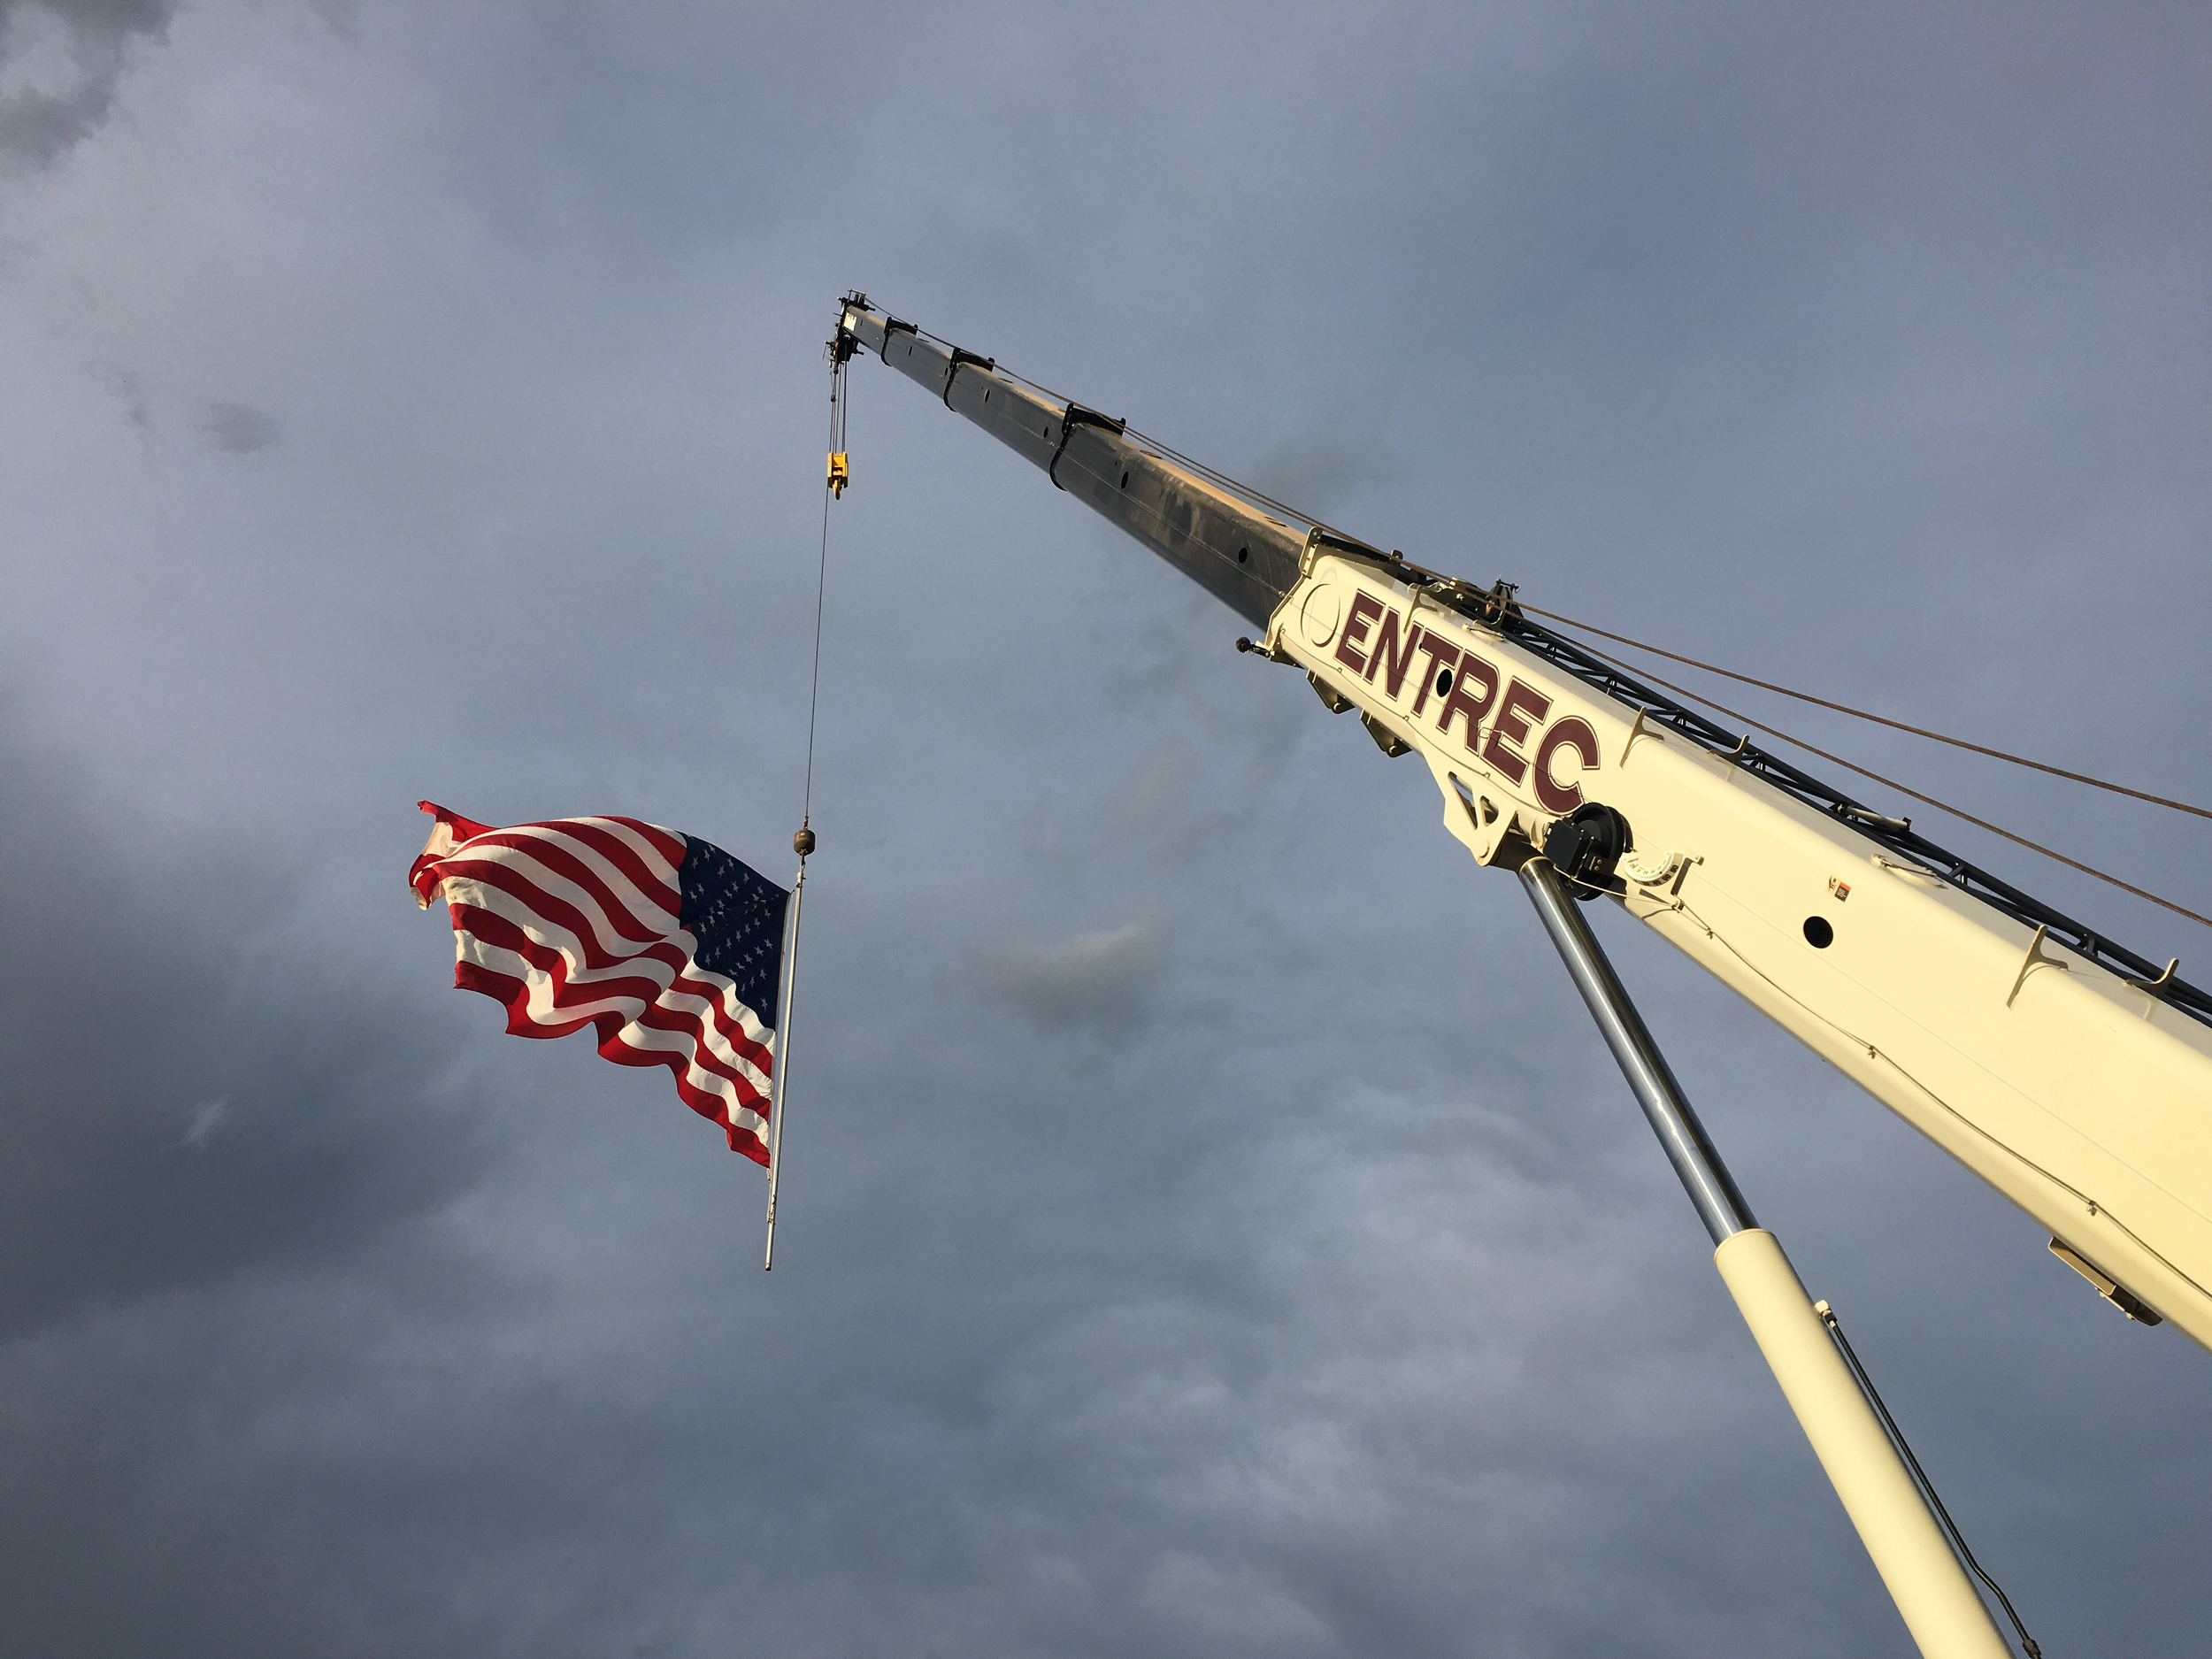 I love the flag flying from a crane